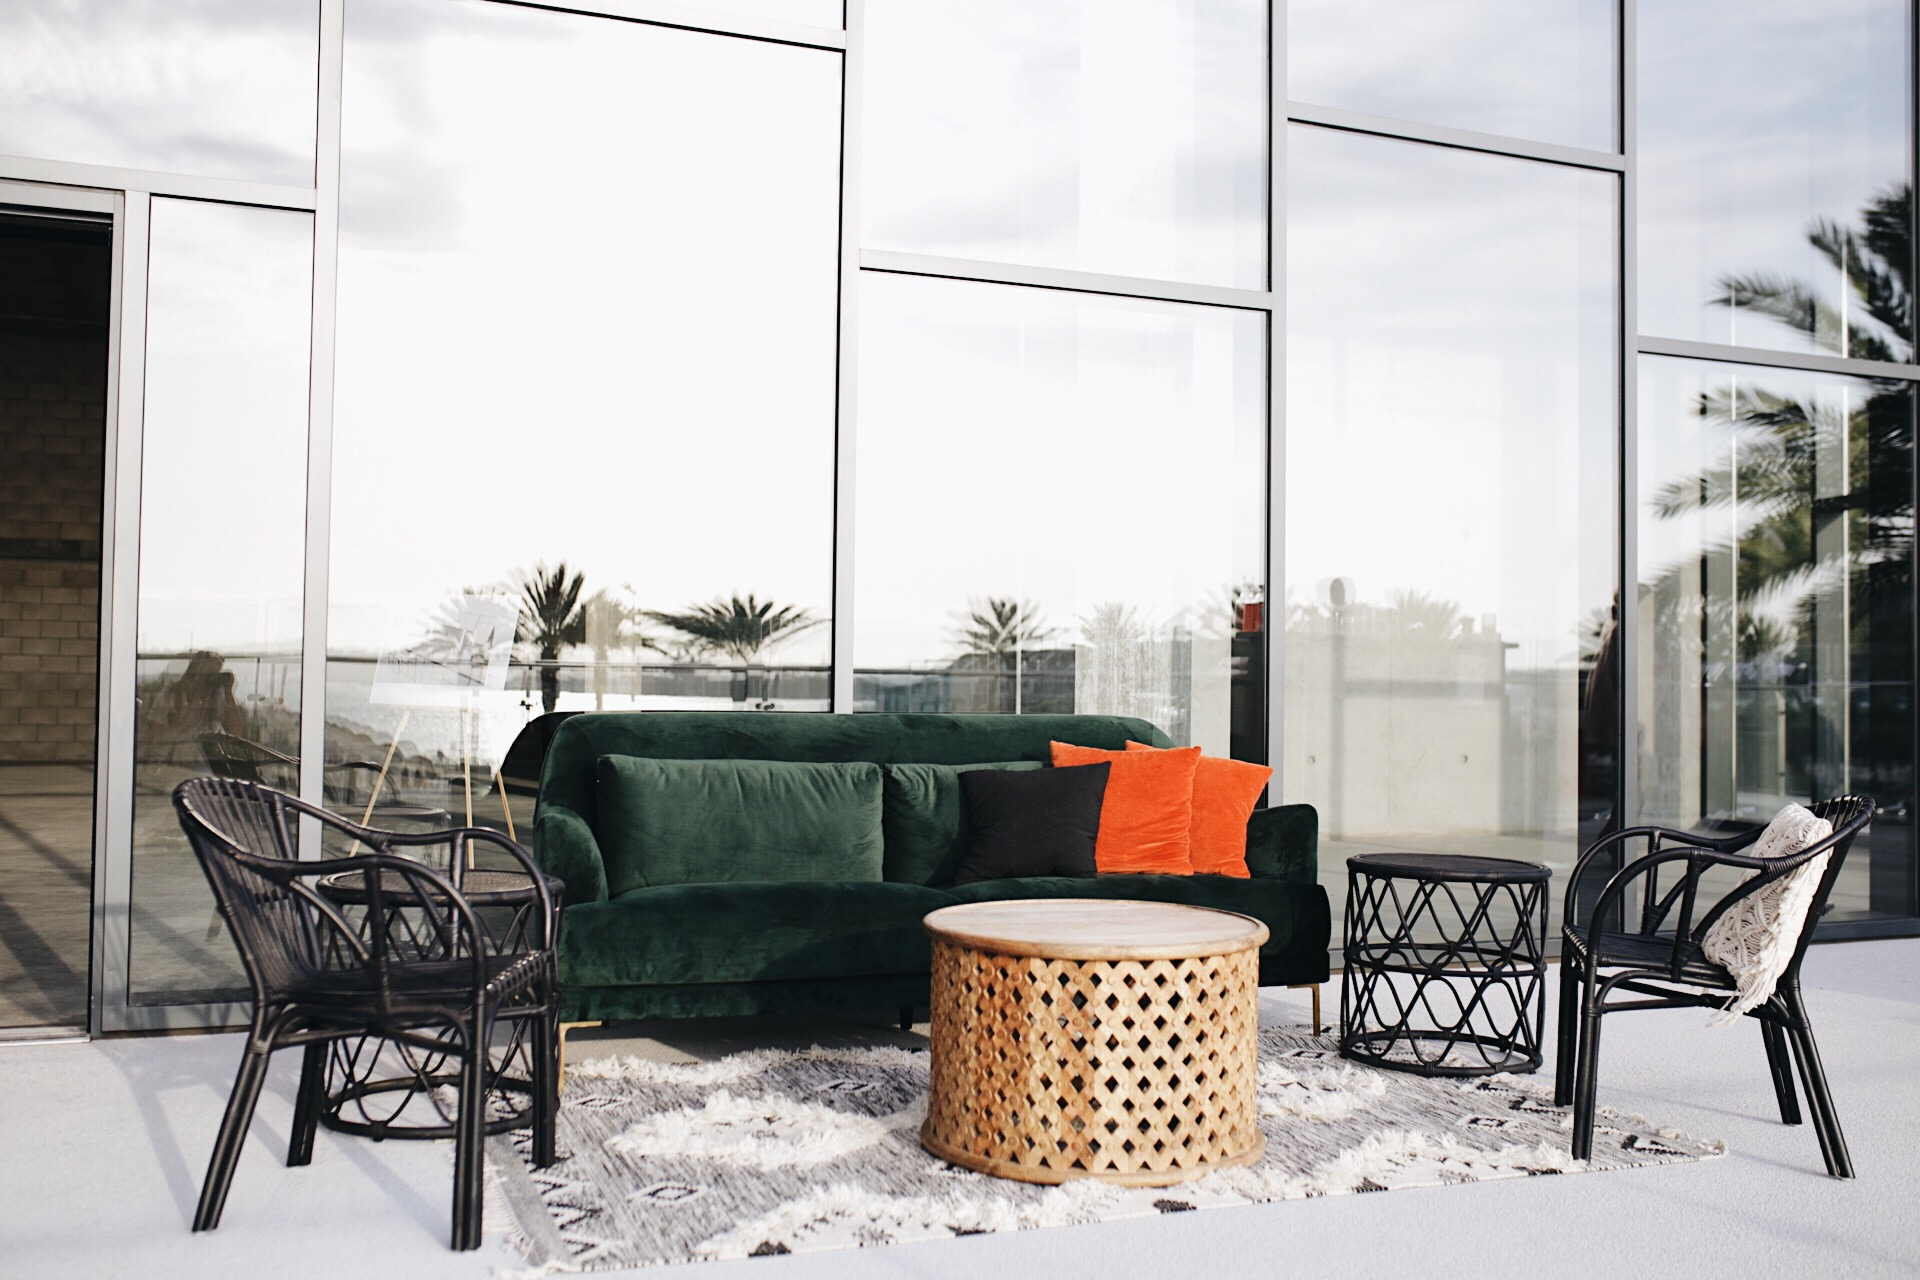 Velvet emerald couch + rattan chairs by  Wonder  complete with sunset views.